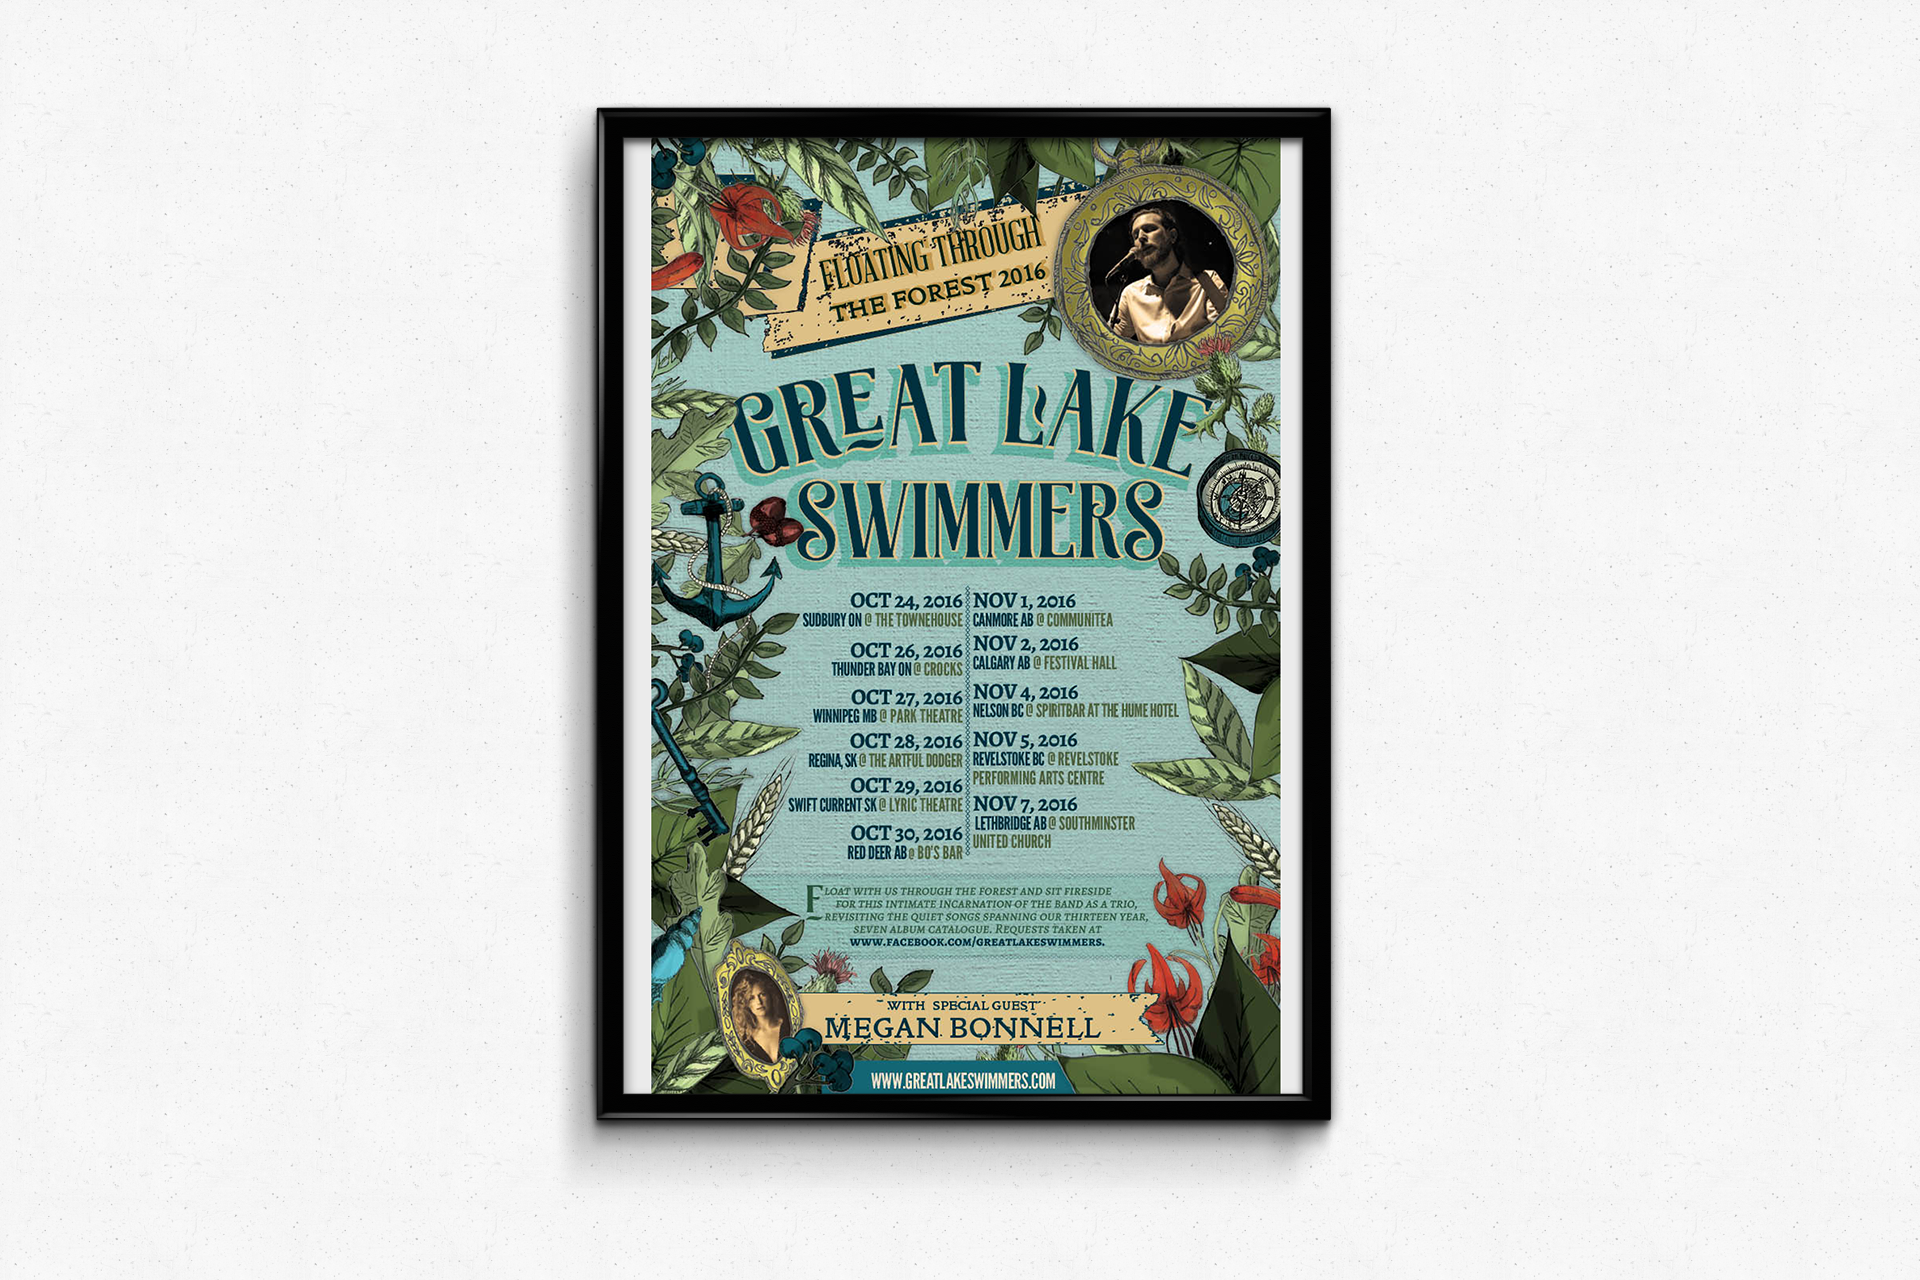 Great Lake Swimmers — Floating through the forest Tour